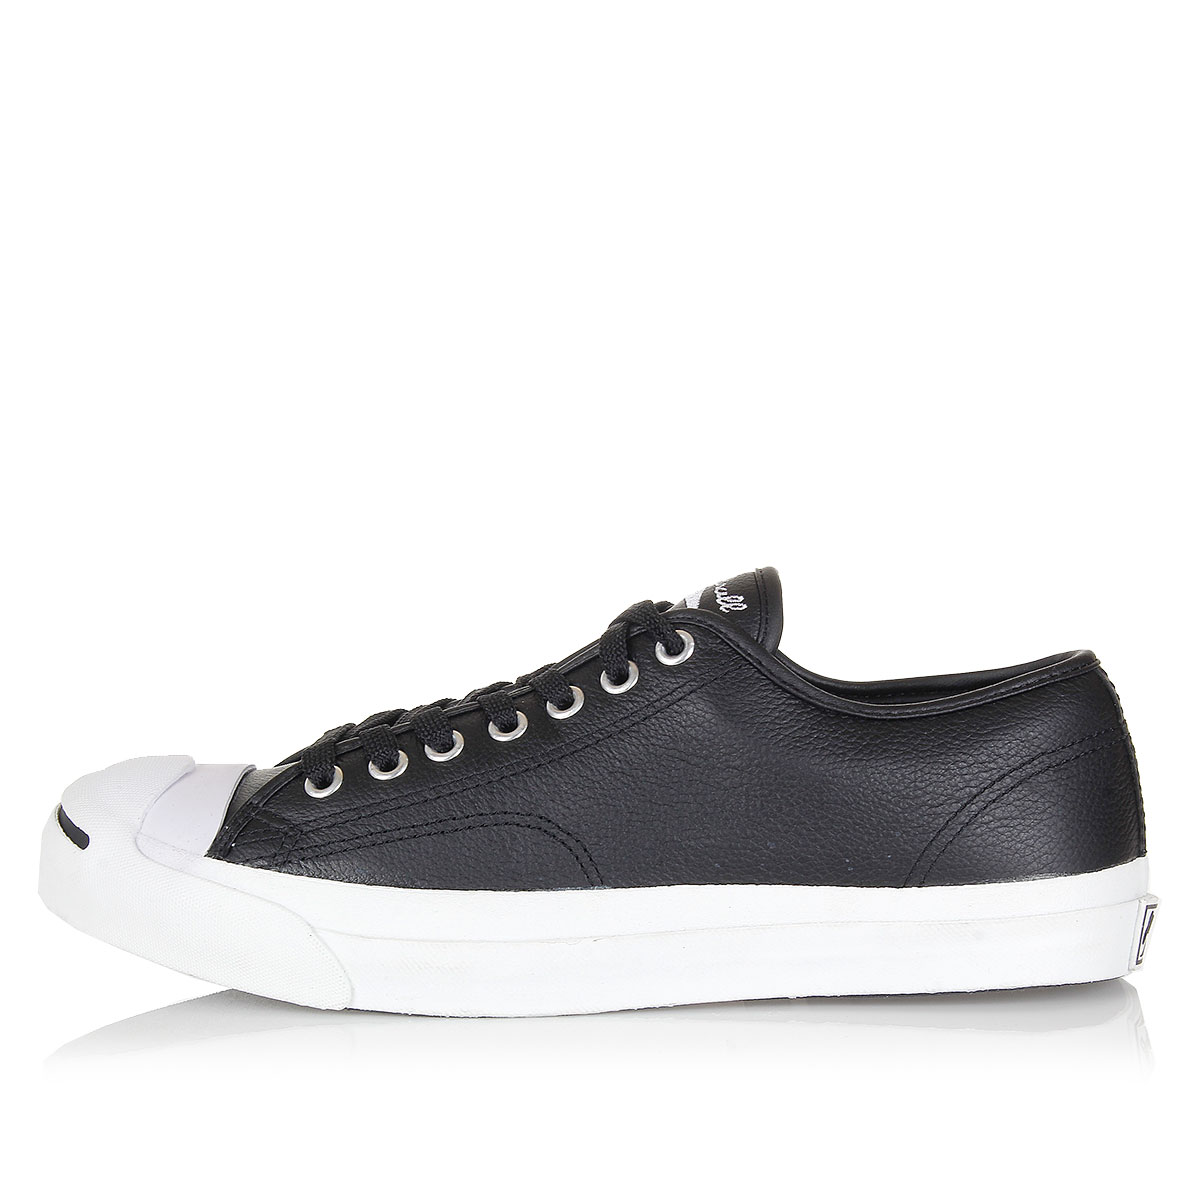 converse outlet store prices qy25  converse outlet store prices